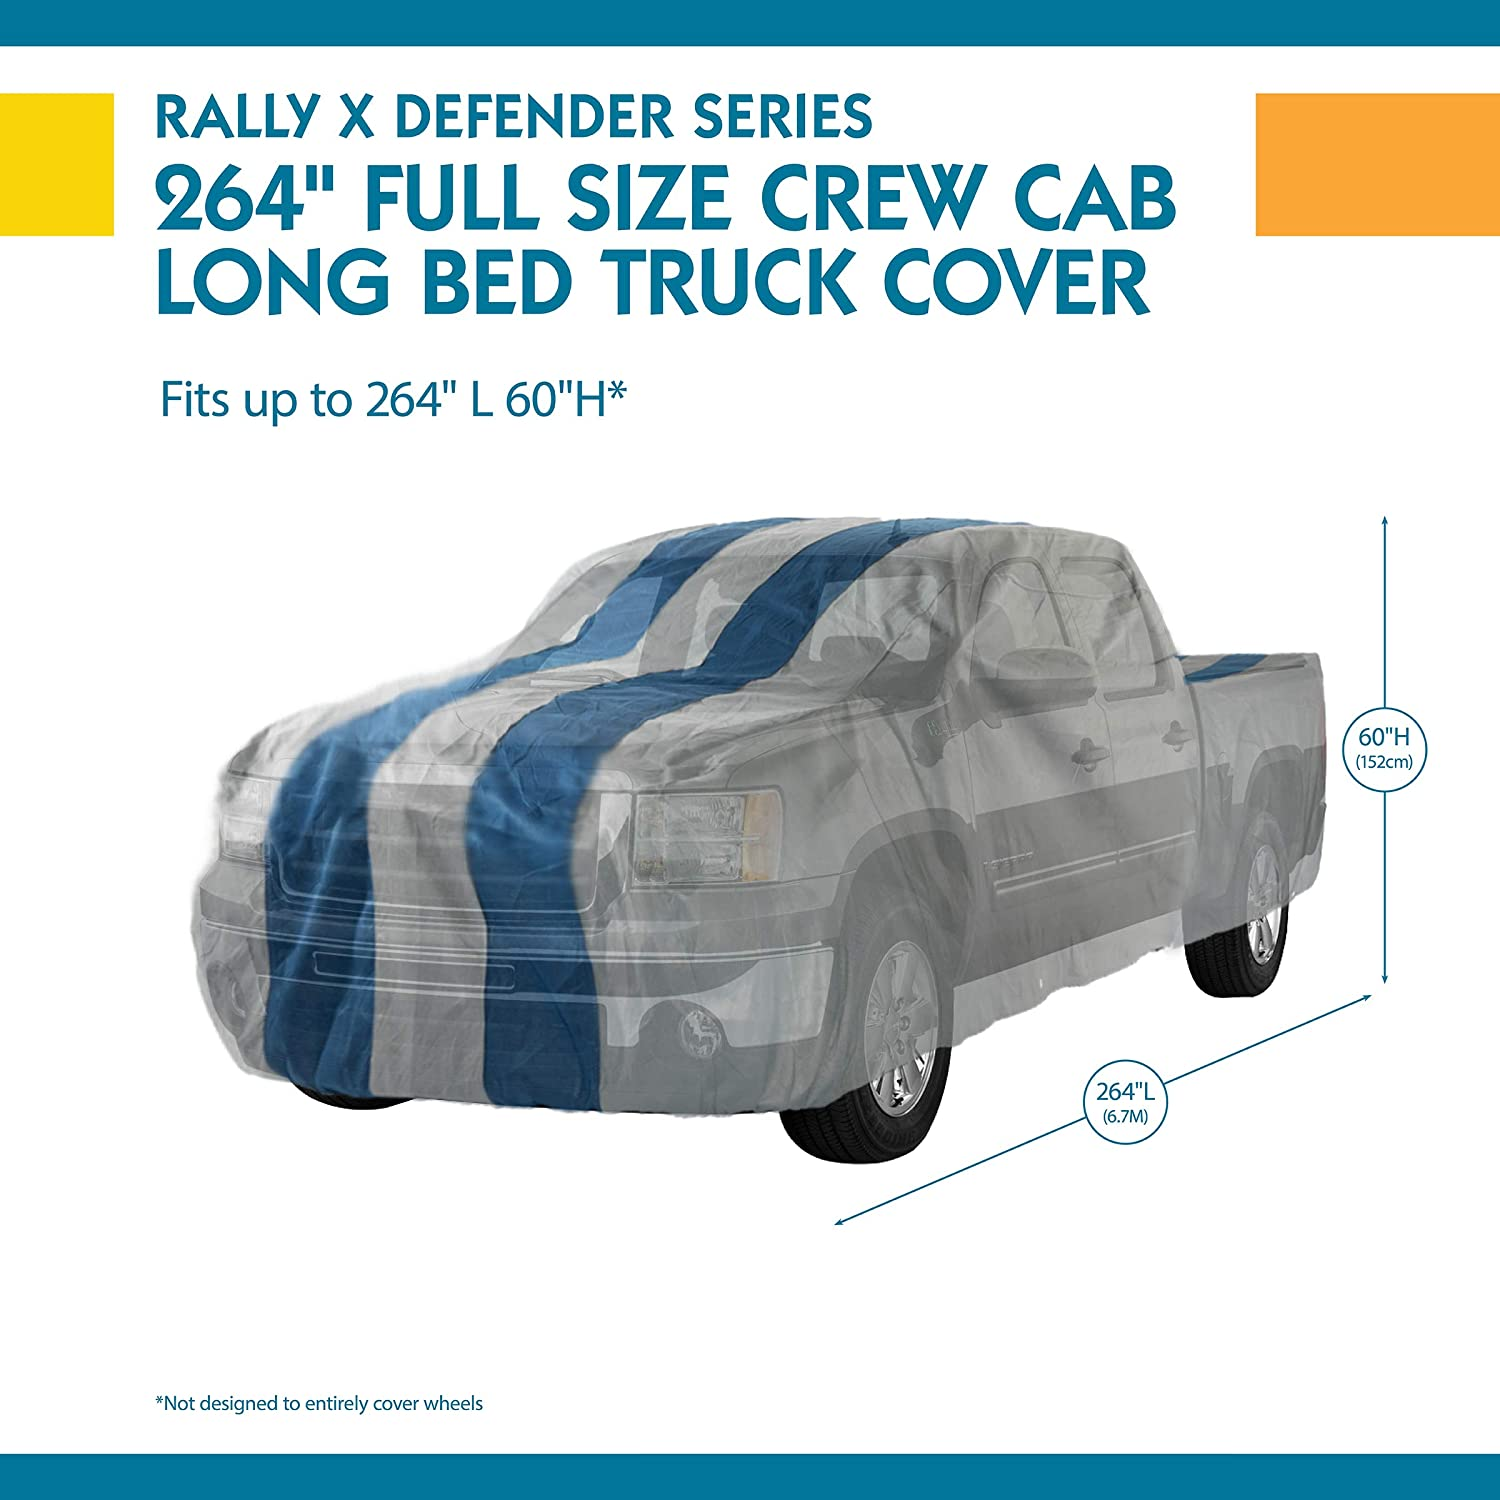 5 in For Regular Cab Trucks up to 17 ft L Duck Covers Rally X Defender Truck Cover